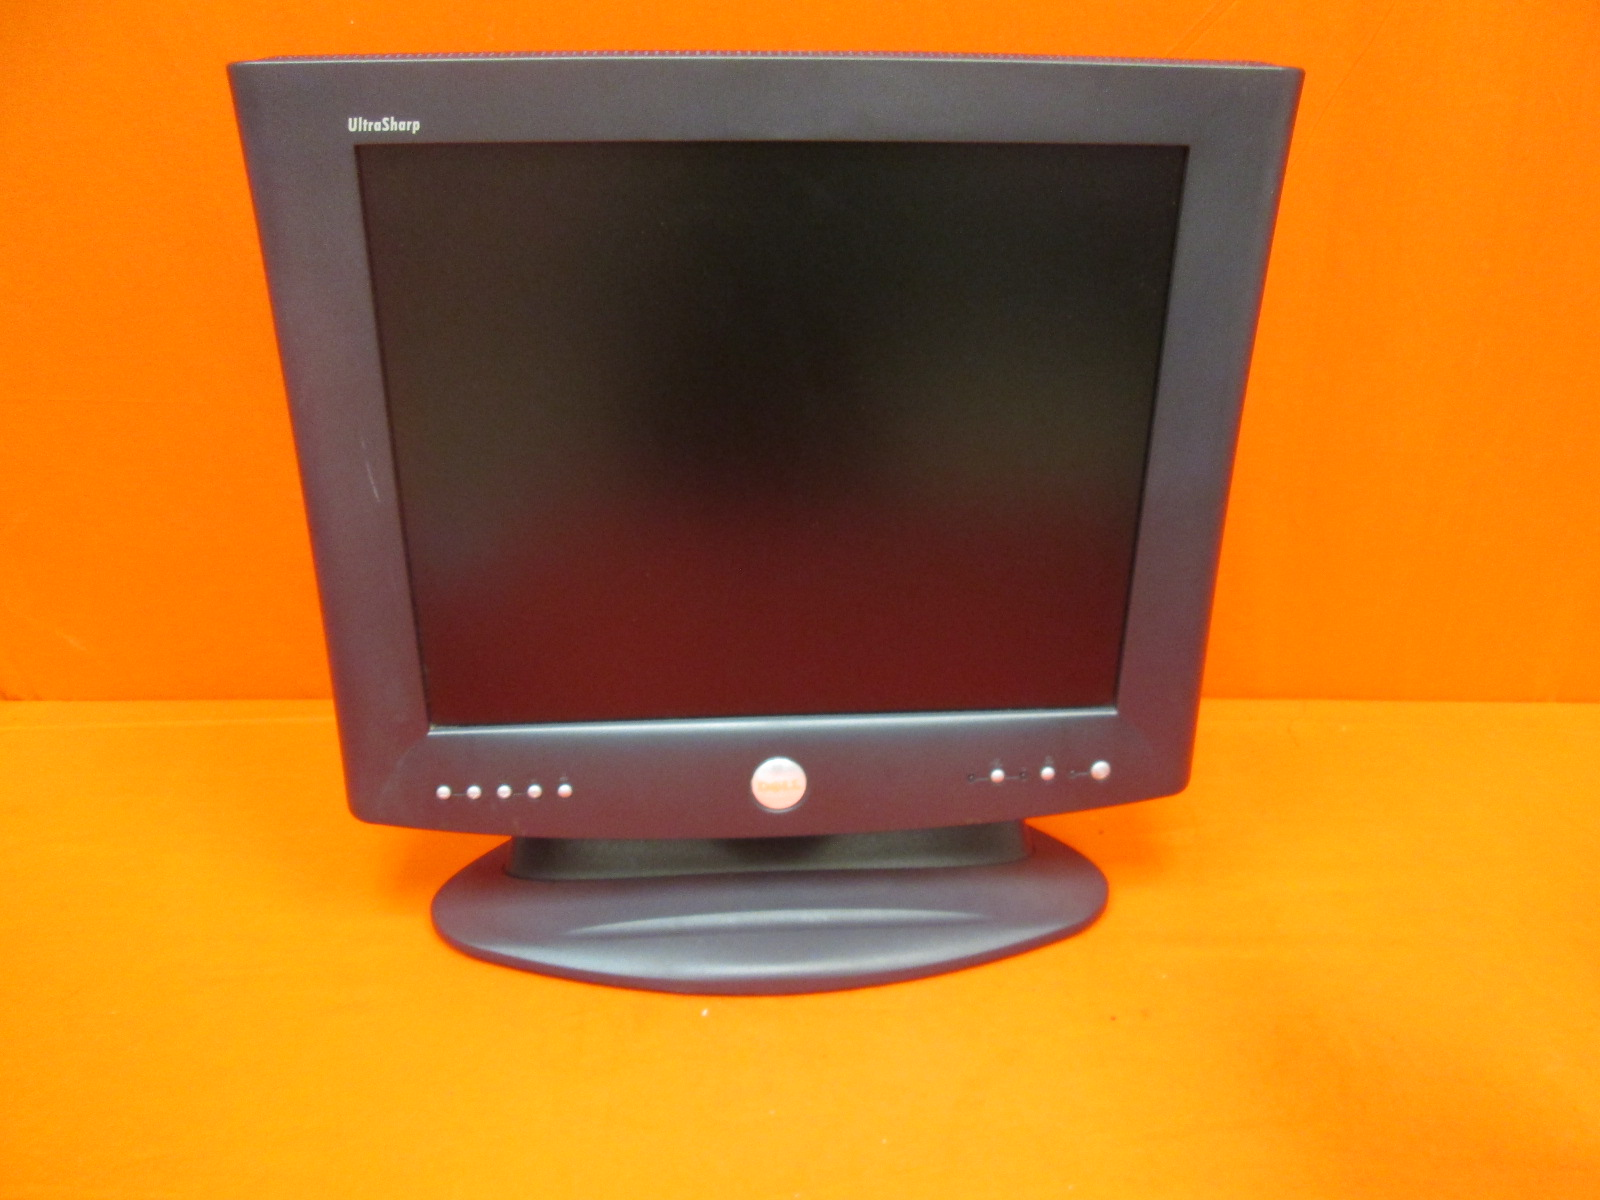 Dell Ultrasharp 1702FP LCD Monitor 17 Inch Incomplete